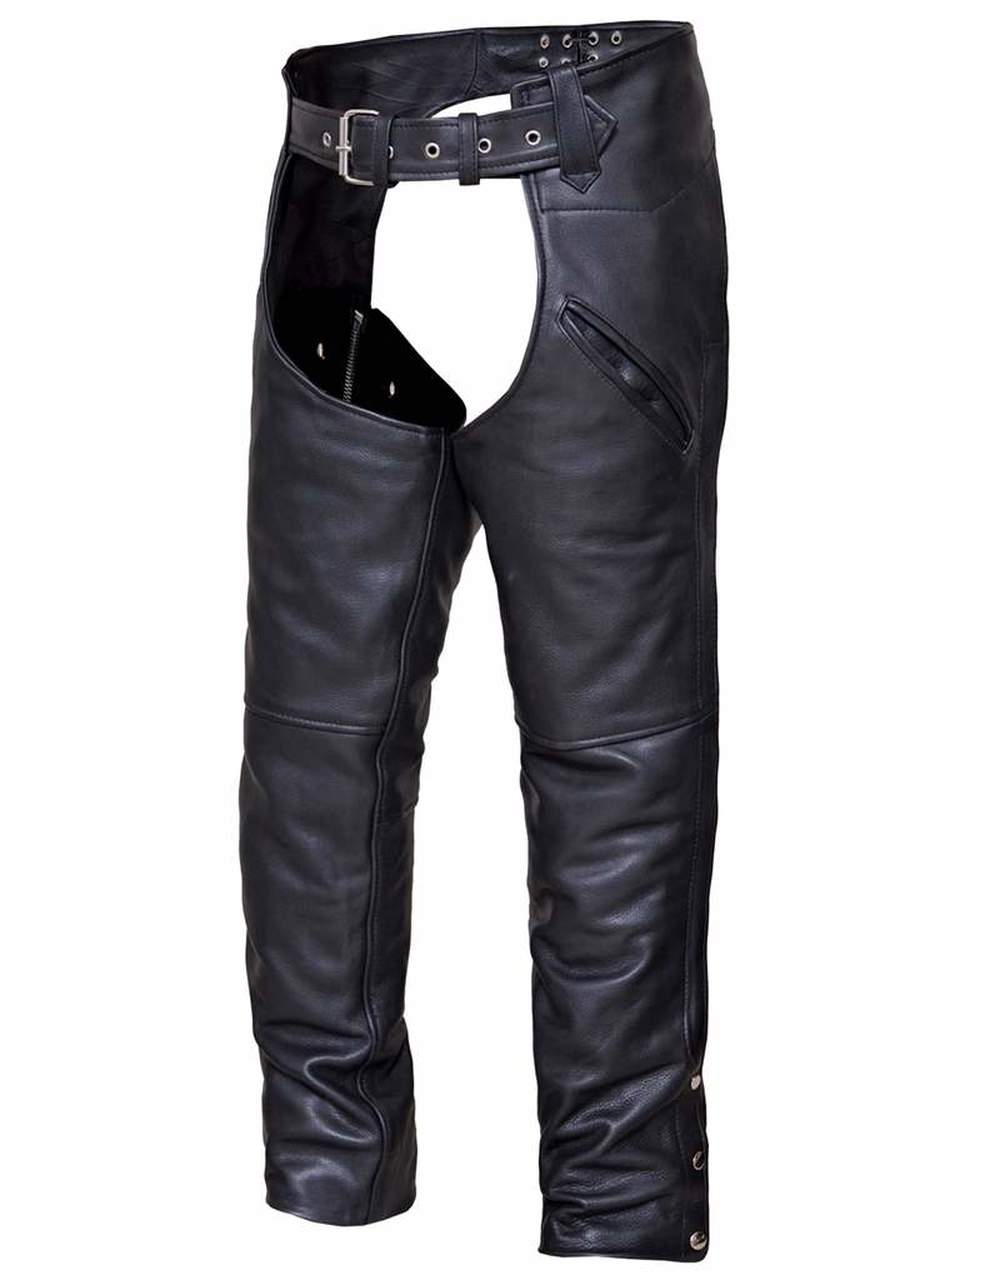 Unisex Leather Motorcycle Chaps 7102.VL  ( Best Selling Chaps )